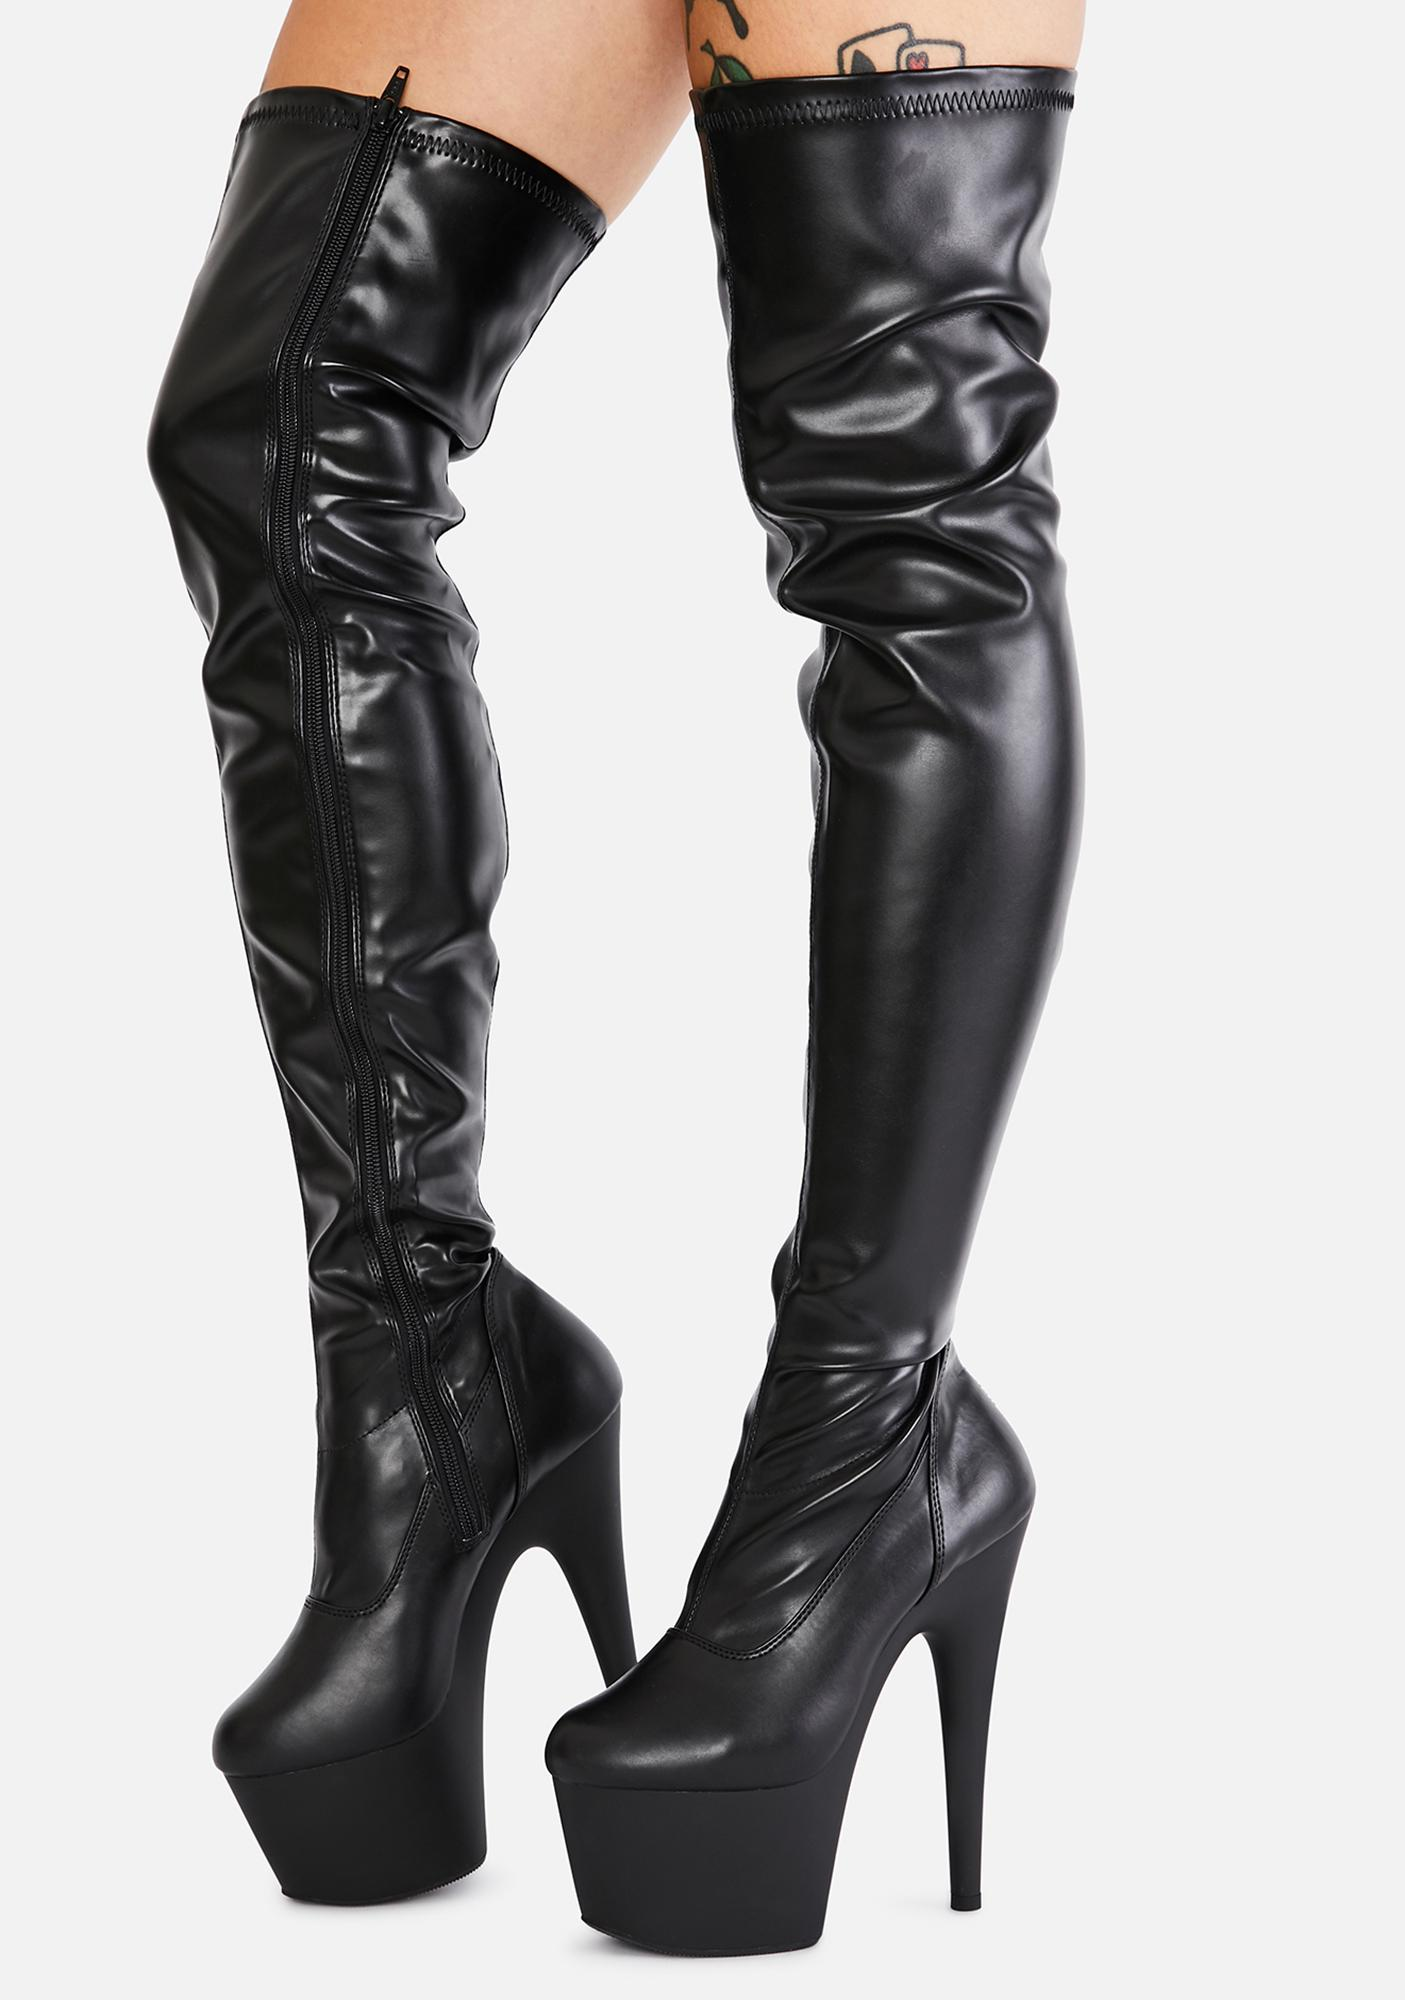 Pleaser Ink Club Strut Thigh High Boots